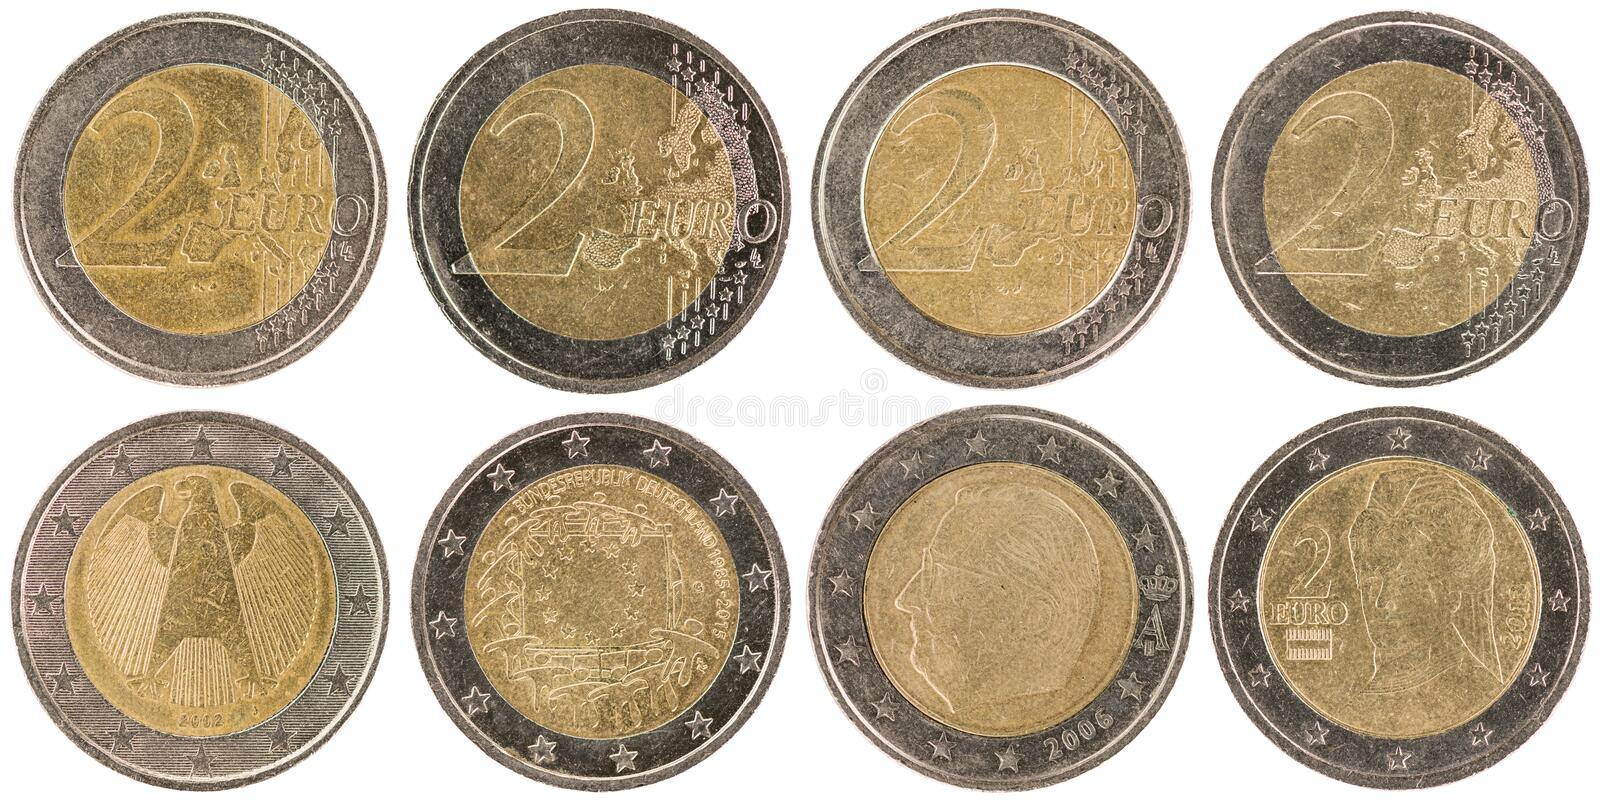 European 2 Euro Coins front and back isolated on white backgro. Some used European 2 Euro Coins front and back isolated on white background stock image